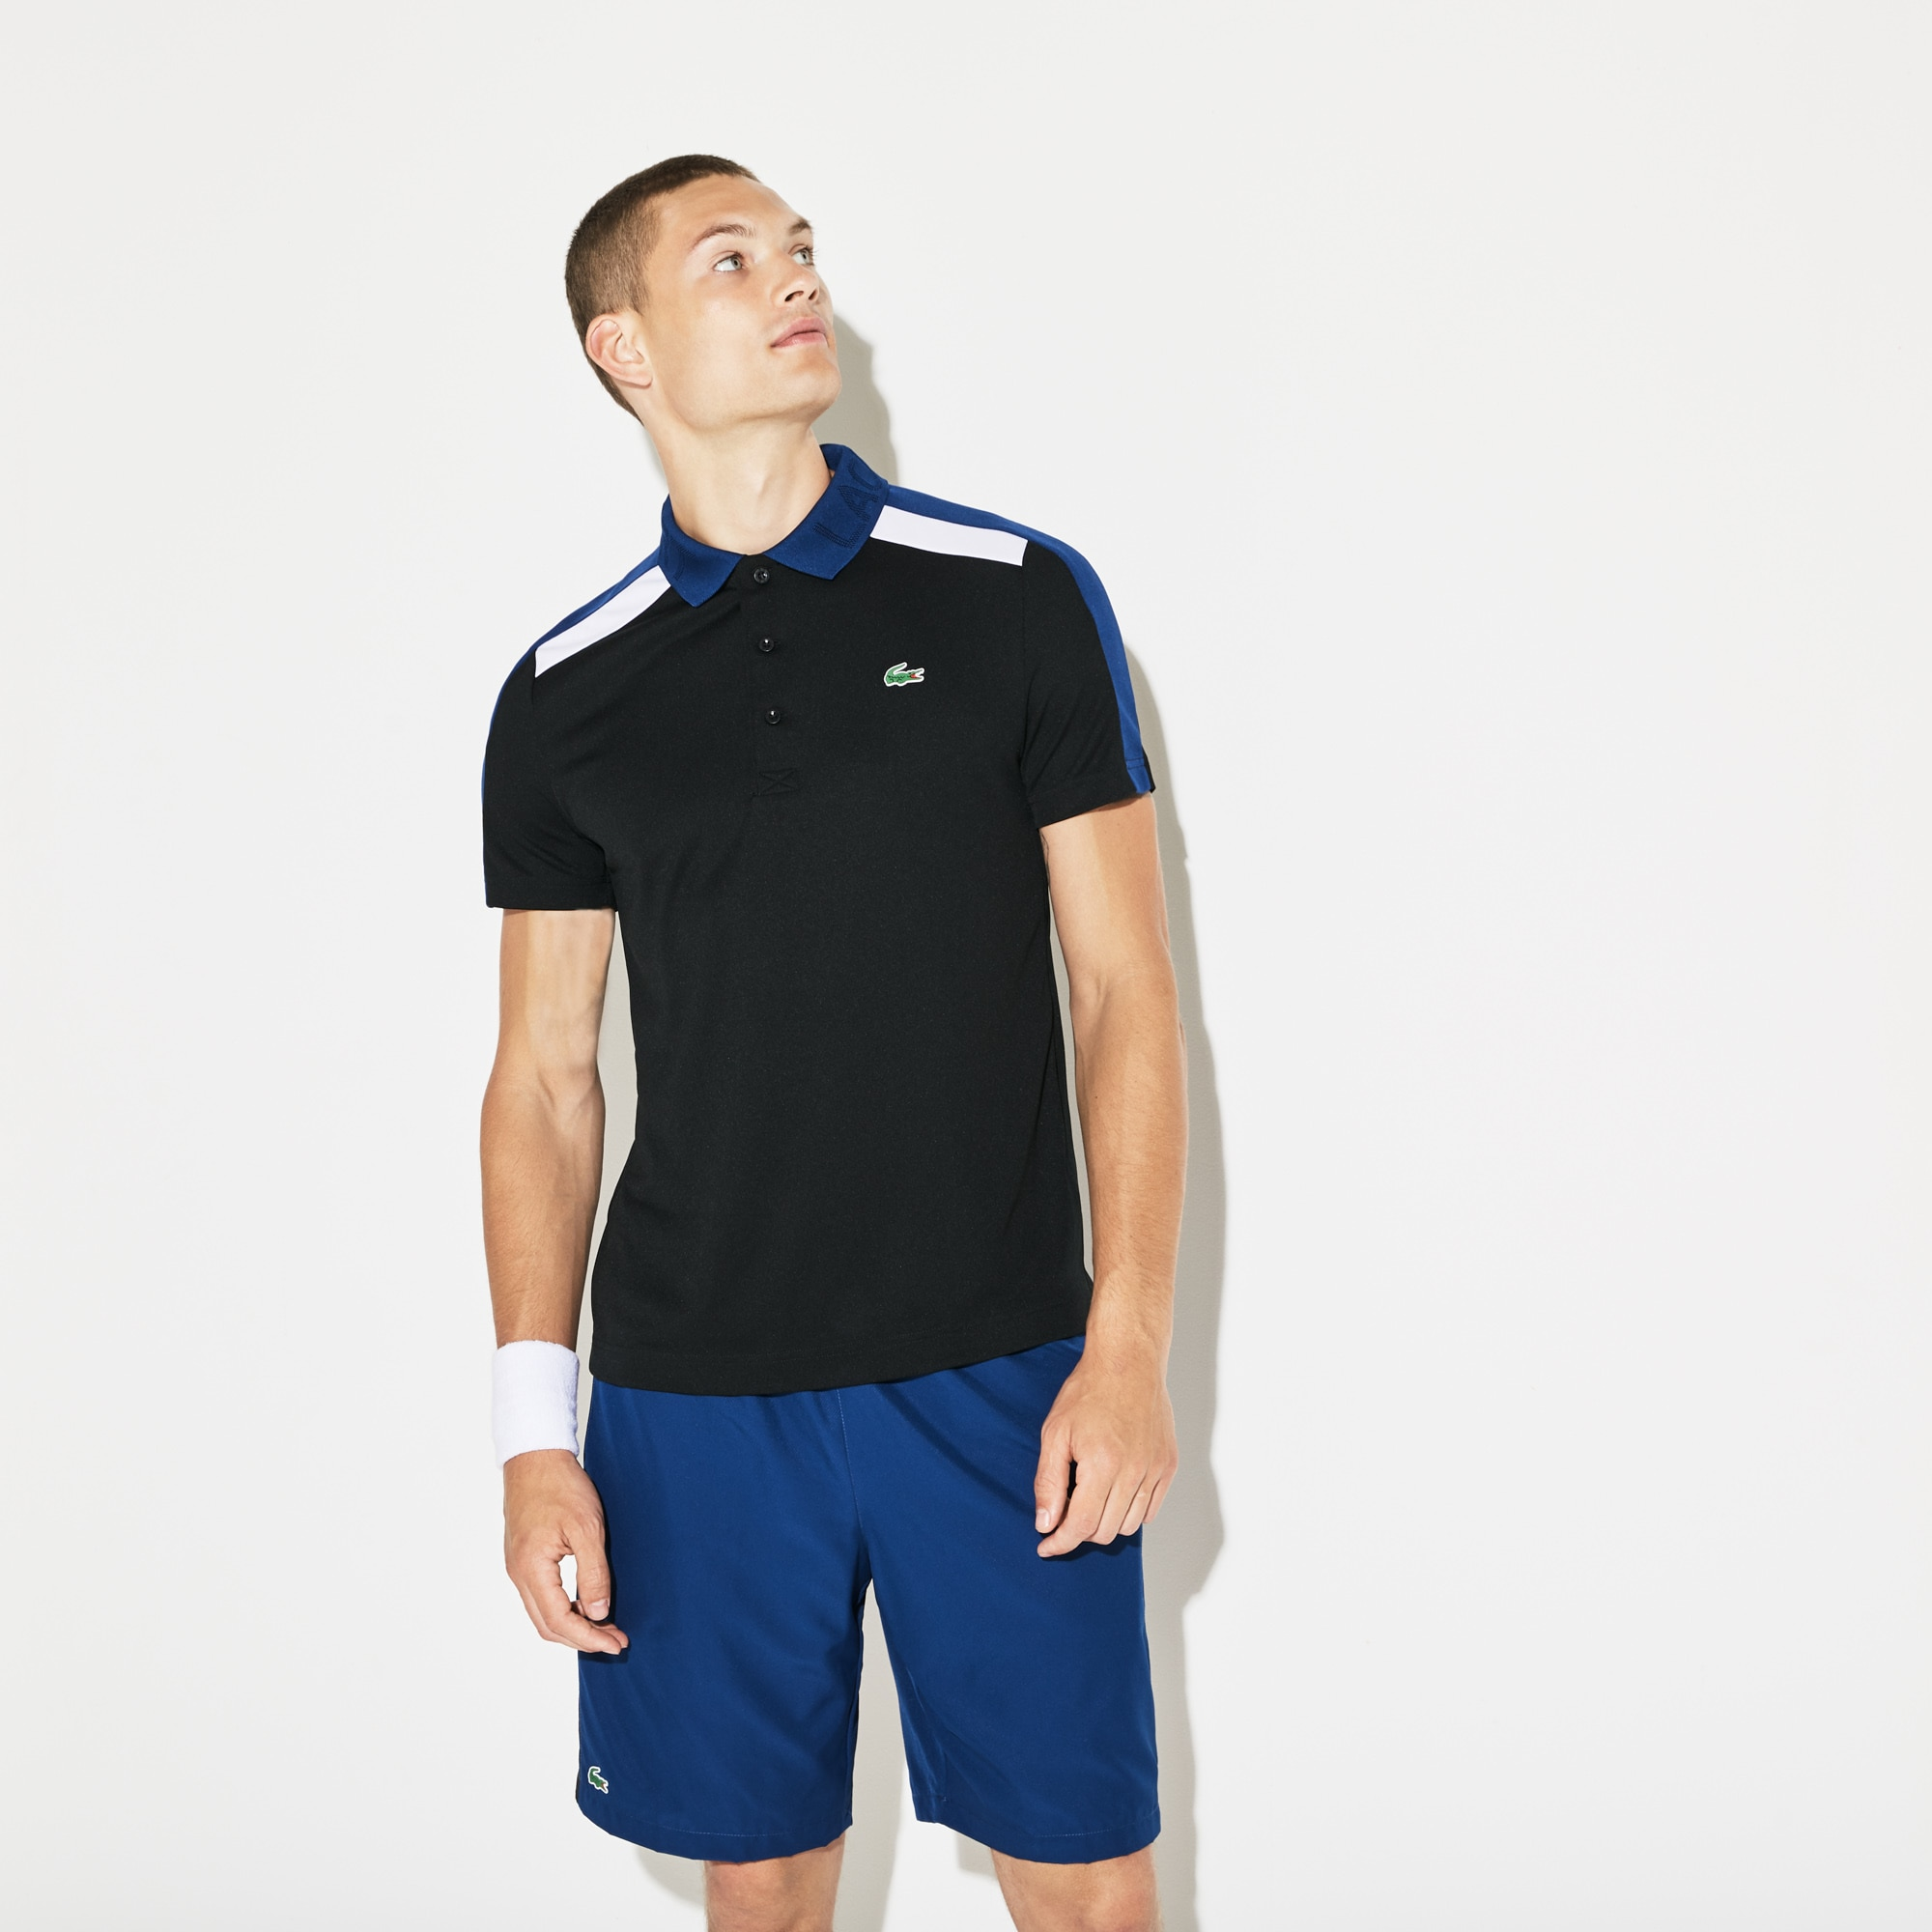 Men's SPORT Contrast Band Technical Piqué Tennis Polo